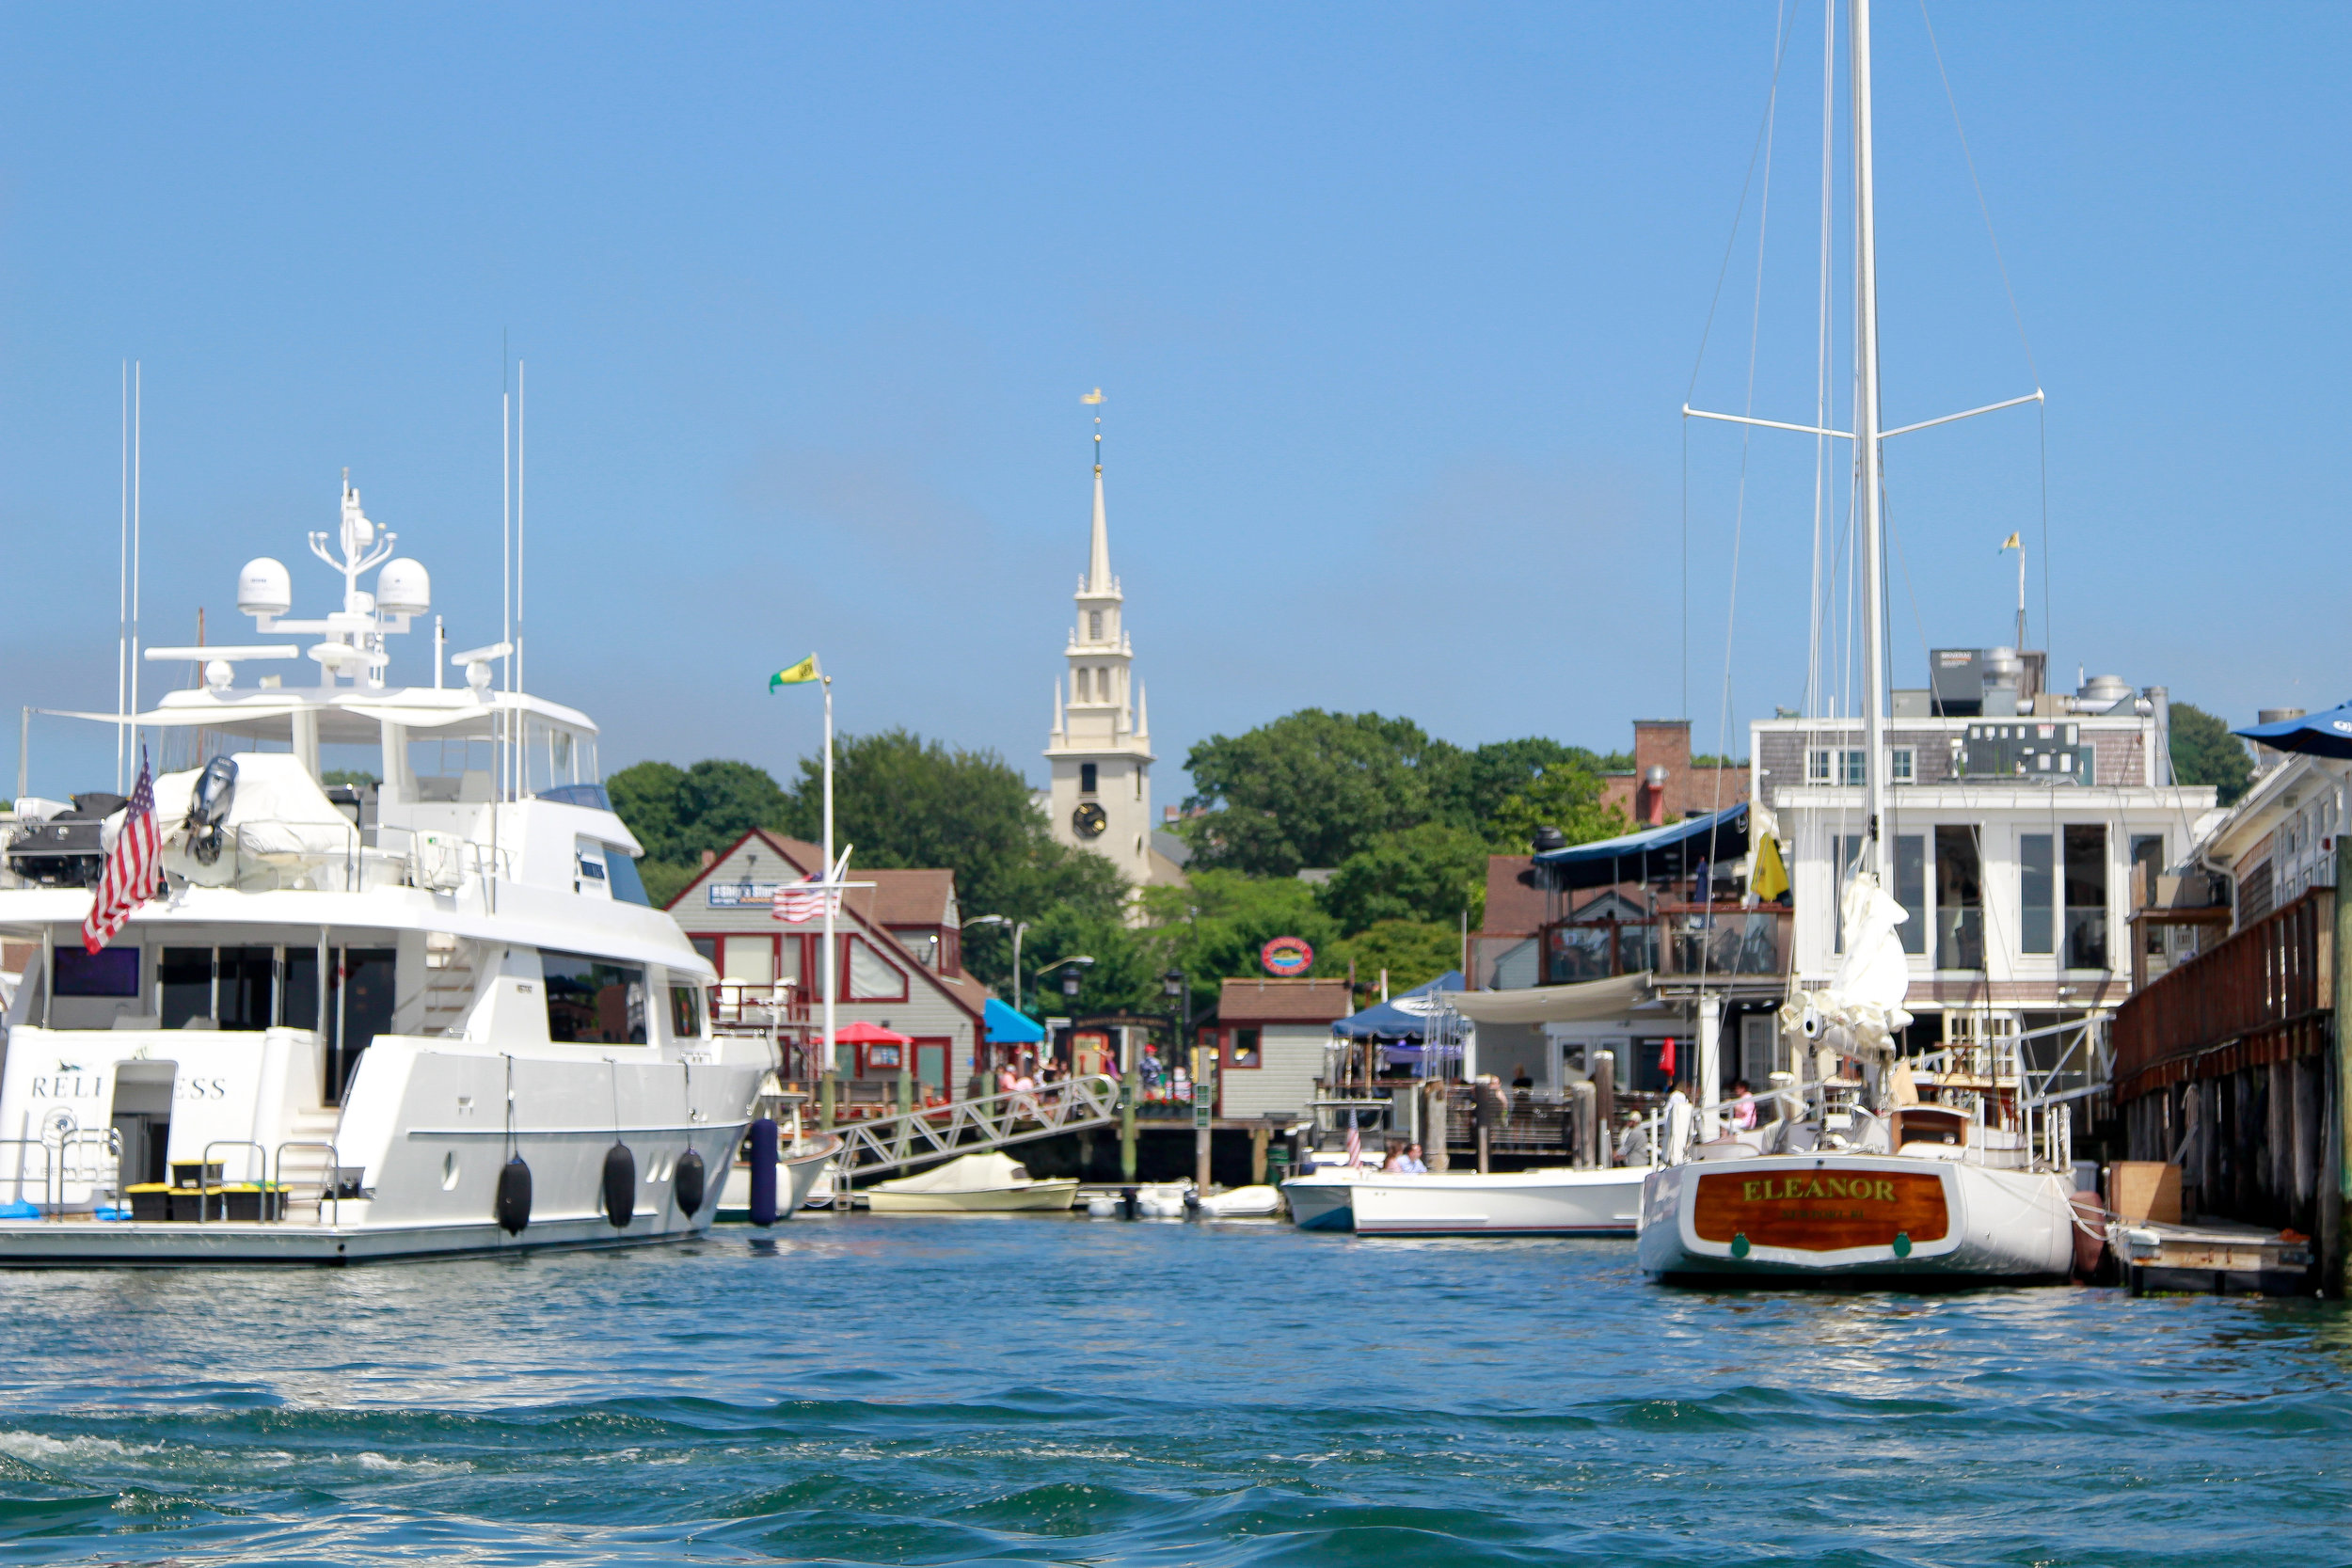 A local's guide to Newport, Rhode Island